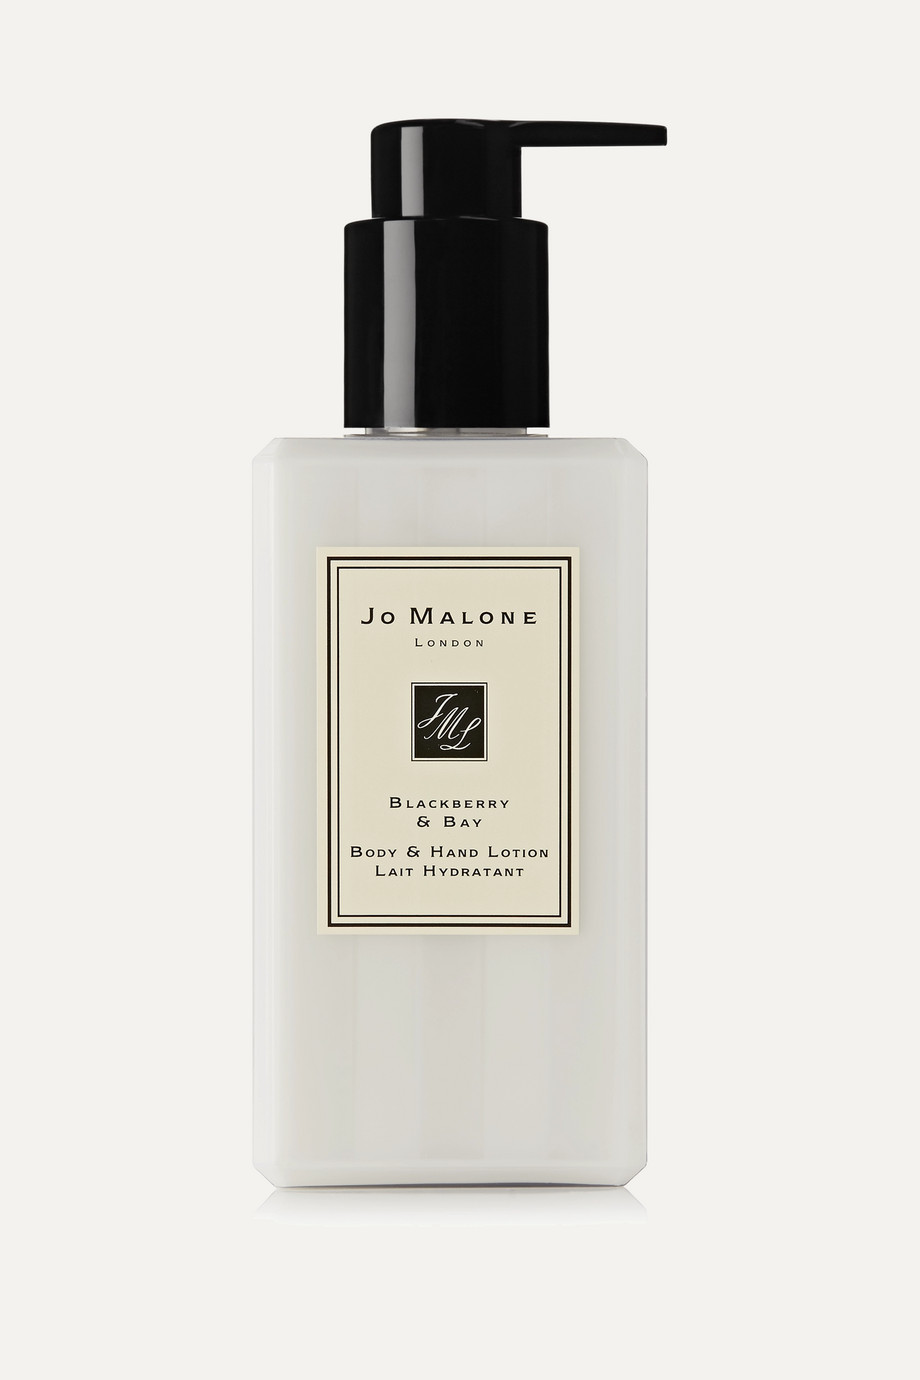 Jo Malone London Blackberry & Bay Body & Hand Lotion, 250ml